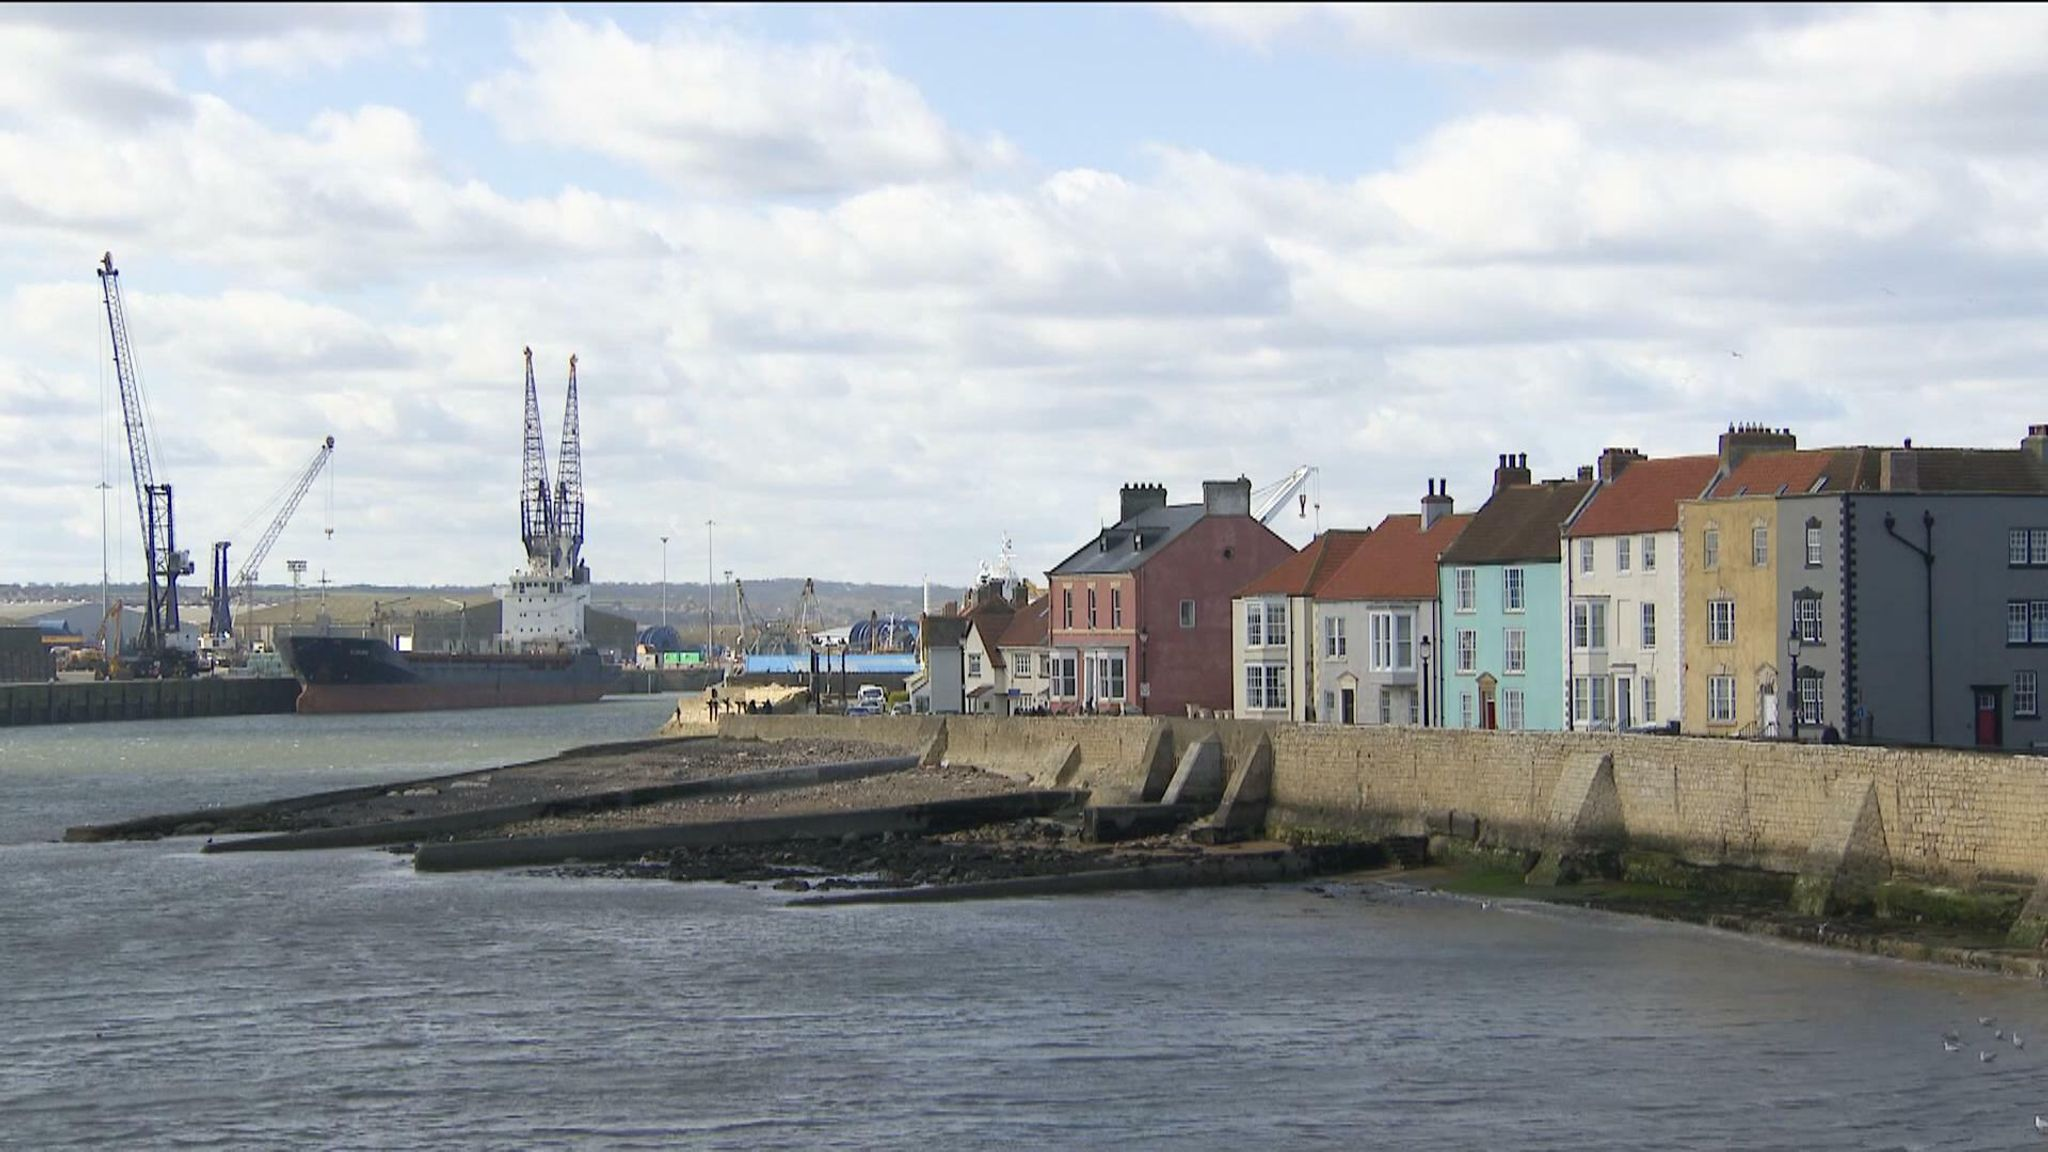 hartlepool by election - photo #25